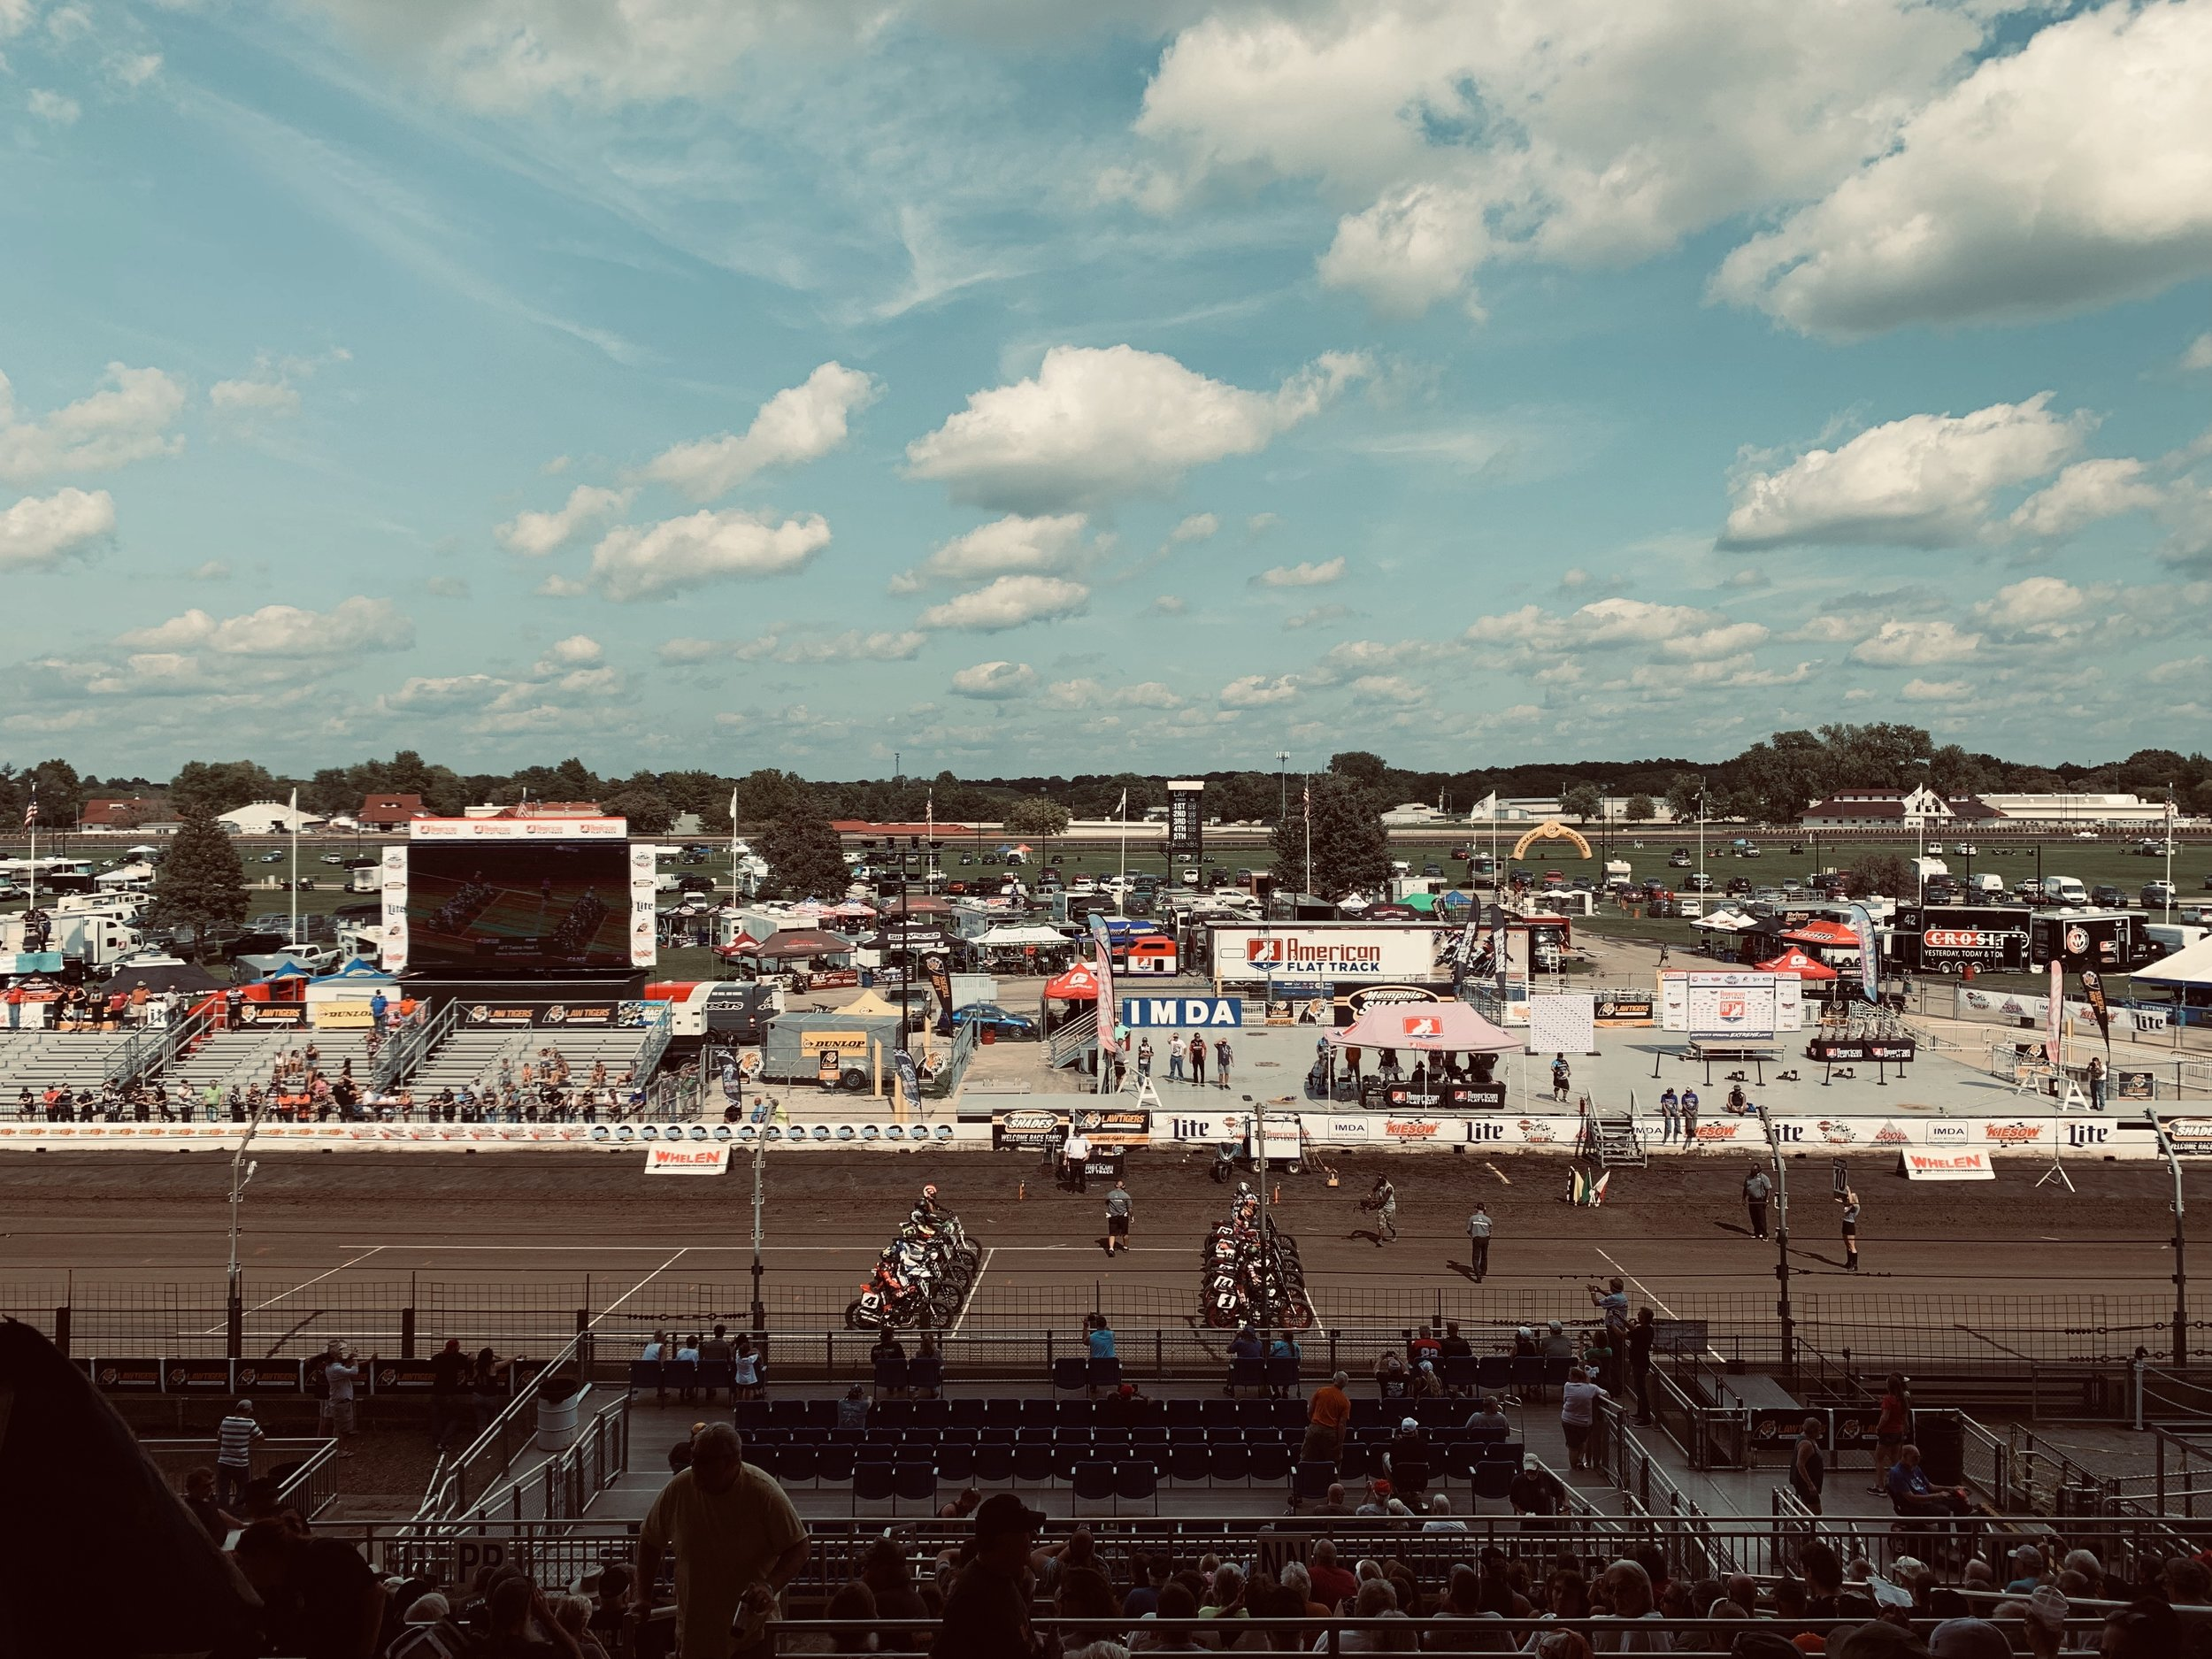 Our view at the Springfield Mile Track.